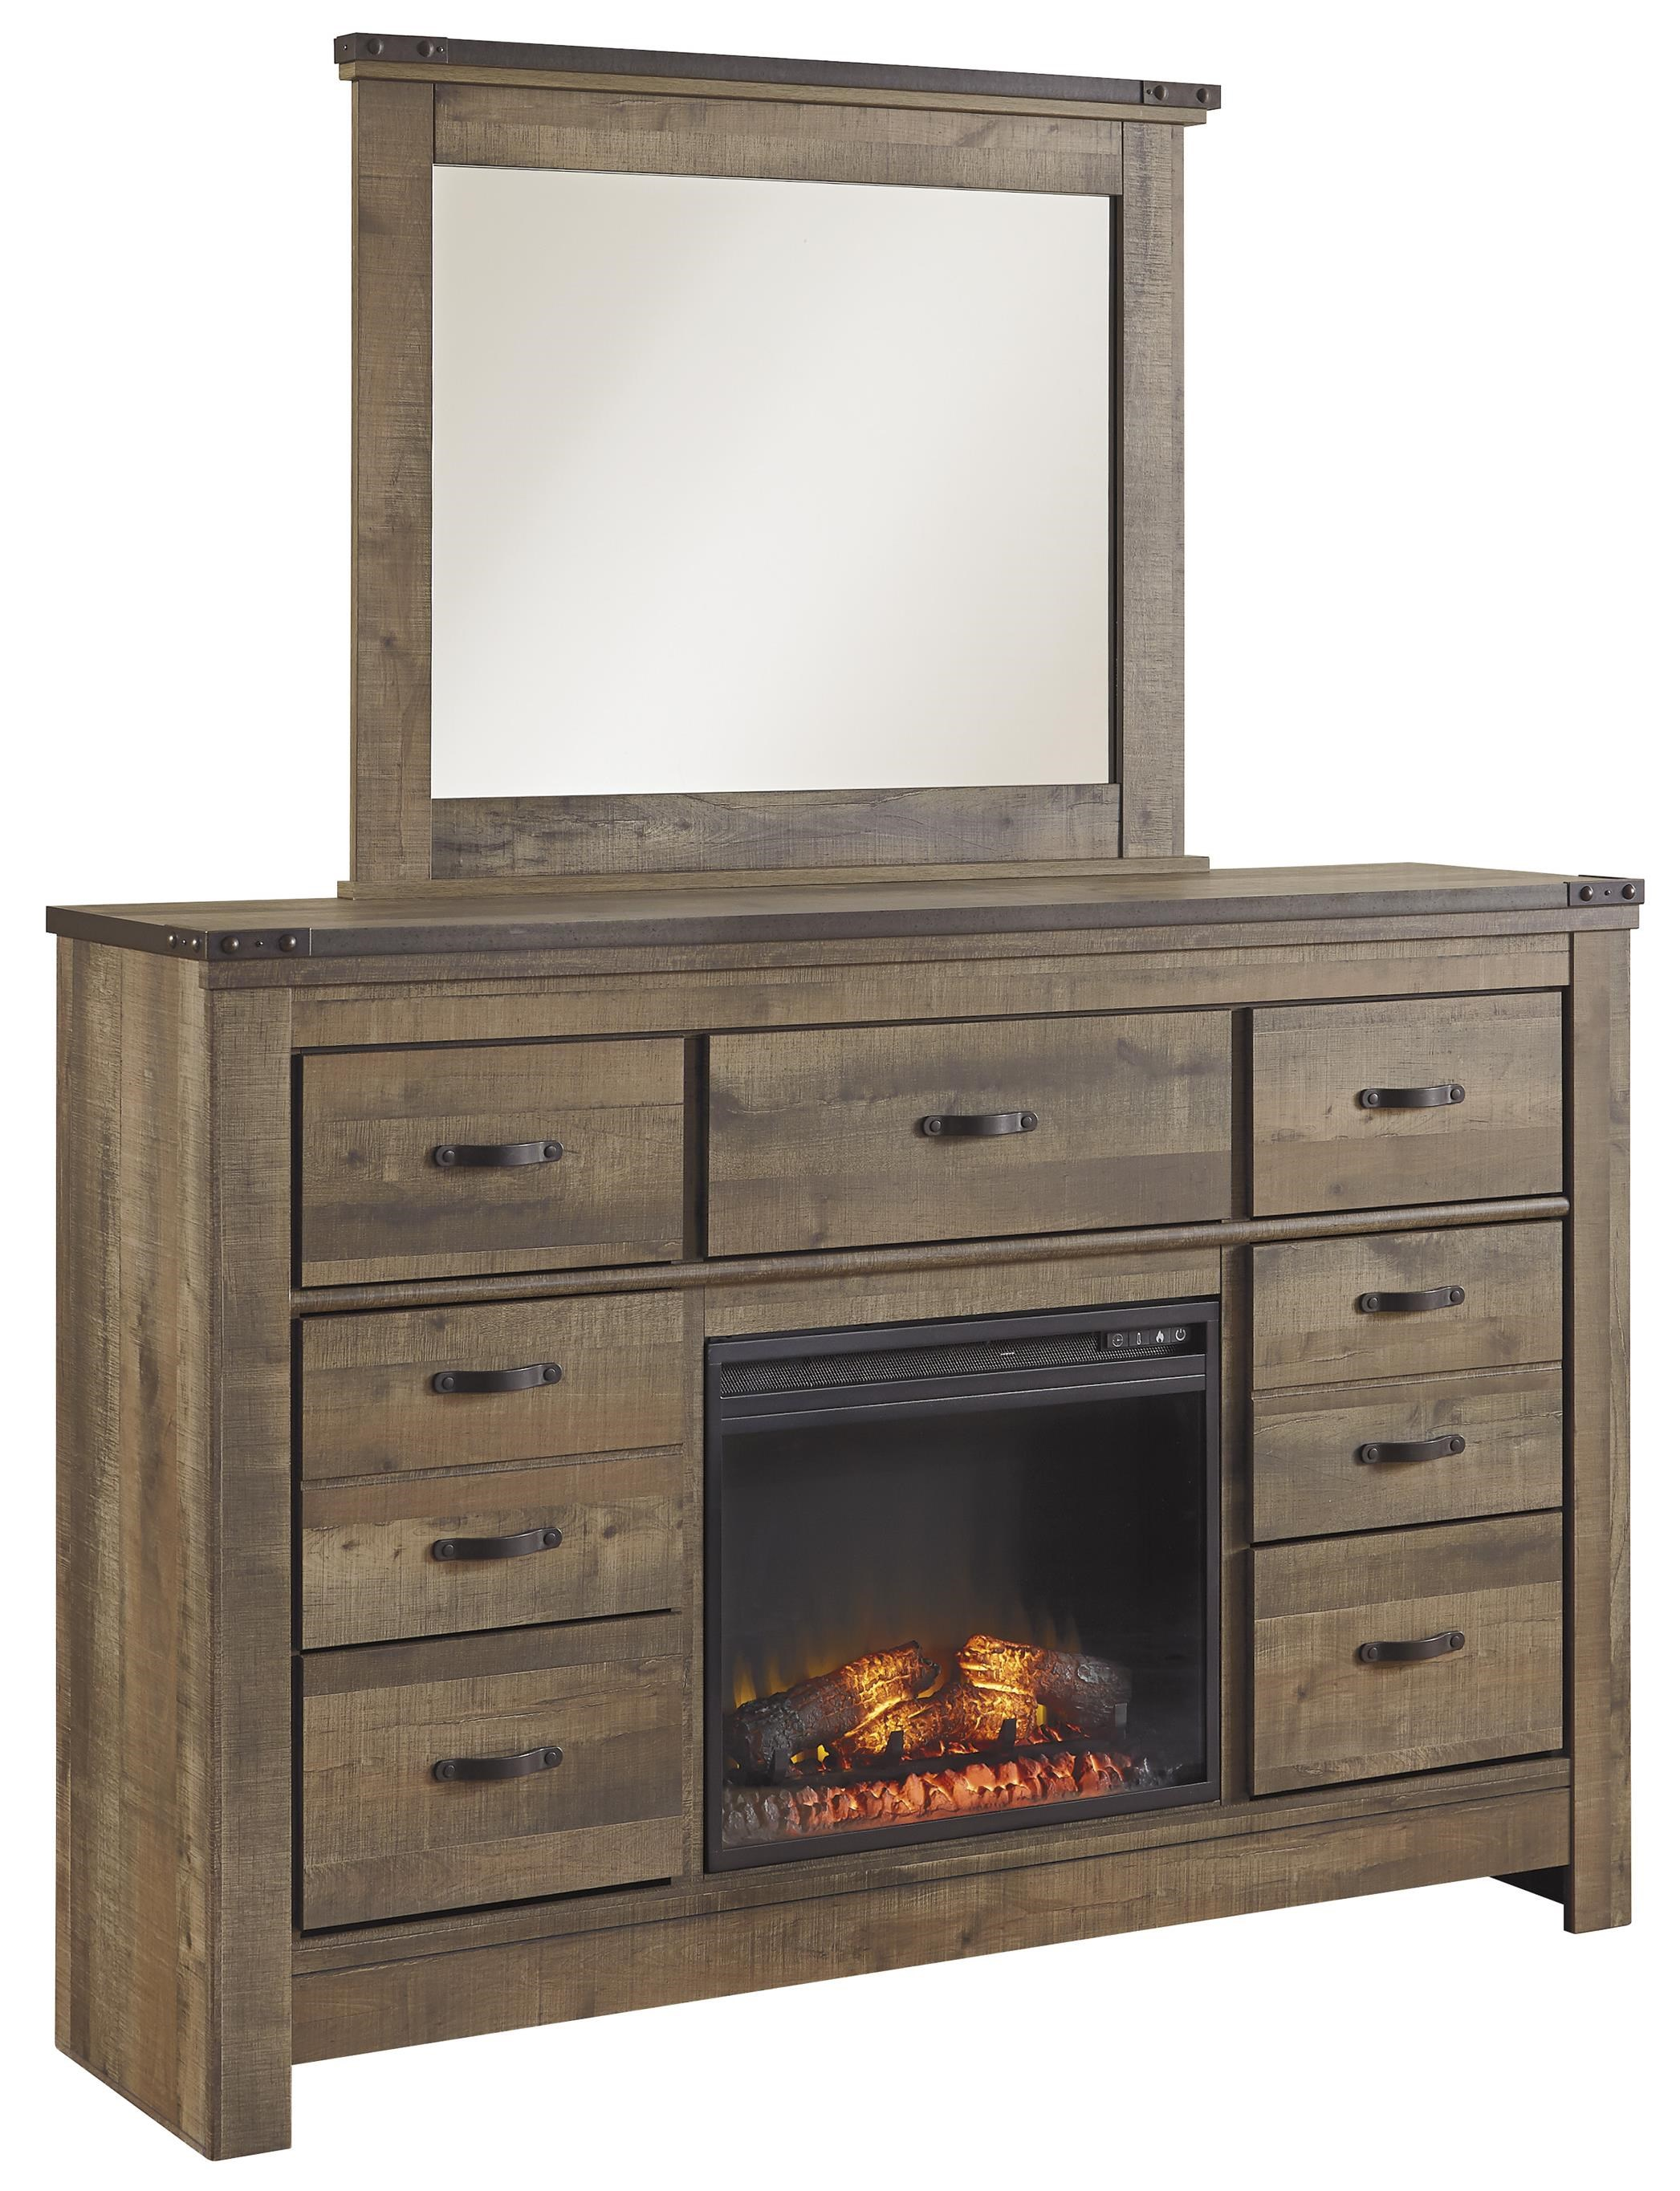 signature design by ashley trinell rustic look dresser Sauder Entertainment Center with Fireplace Dresser Electric Fireplace